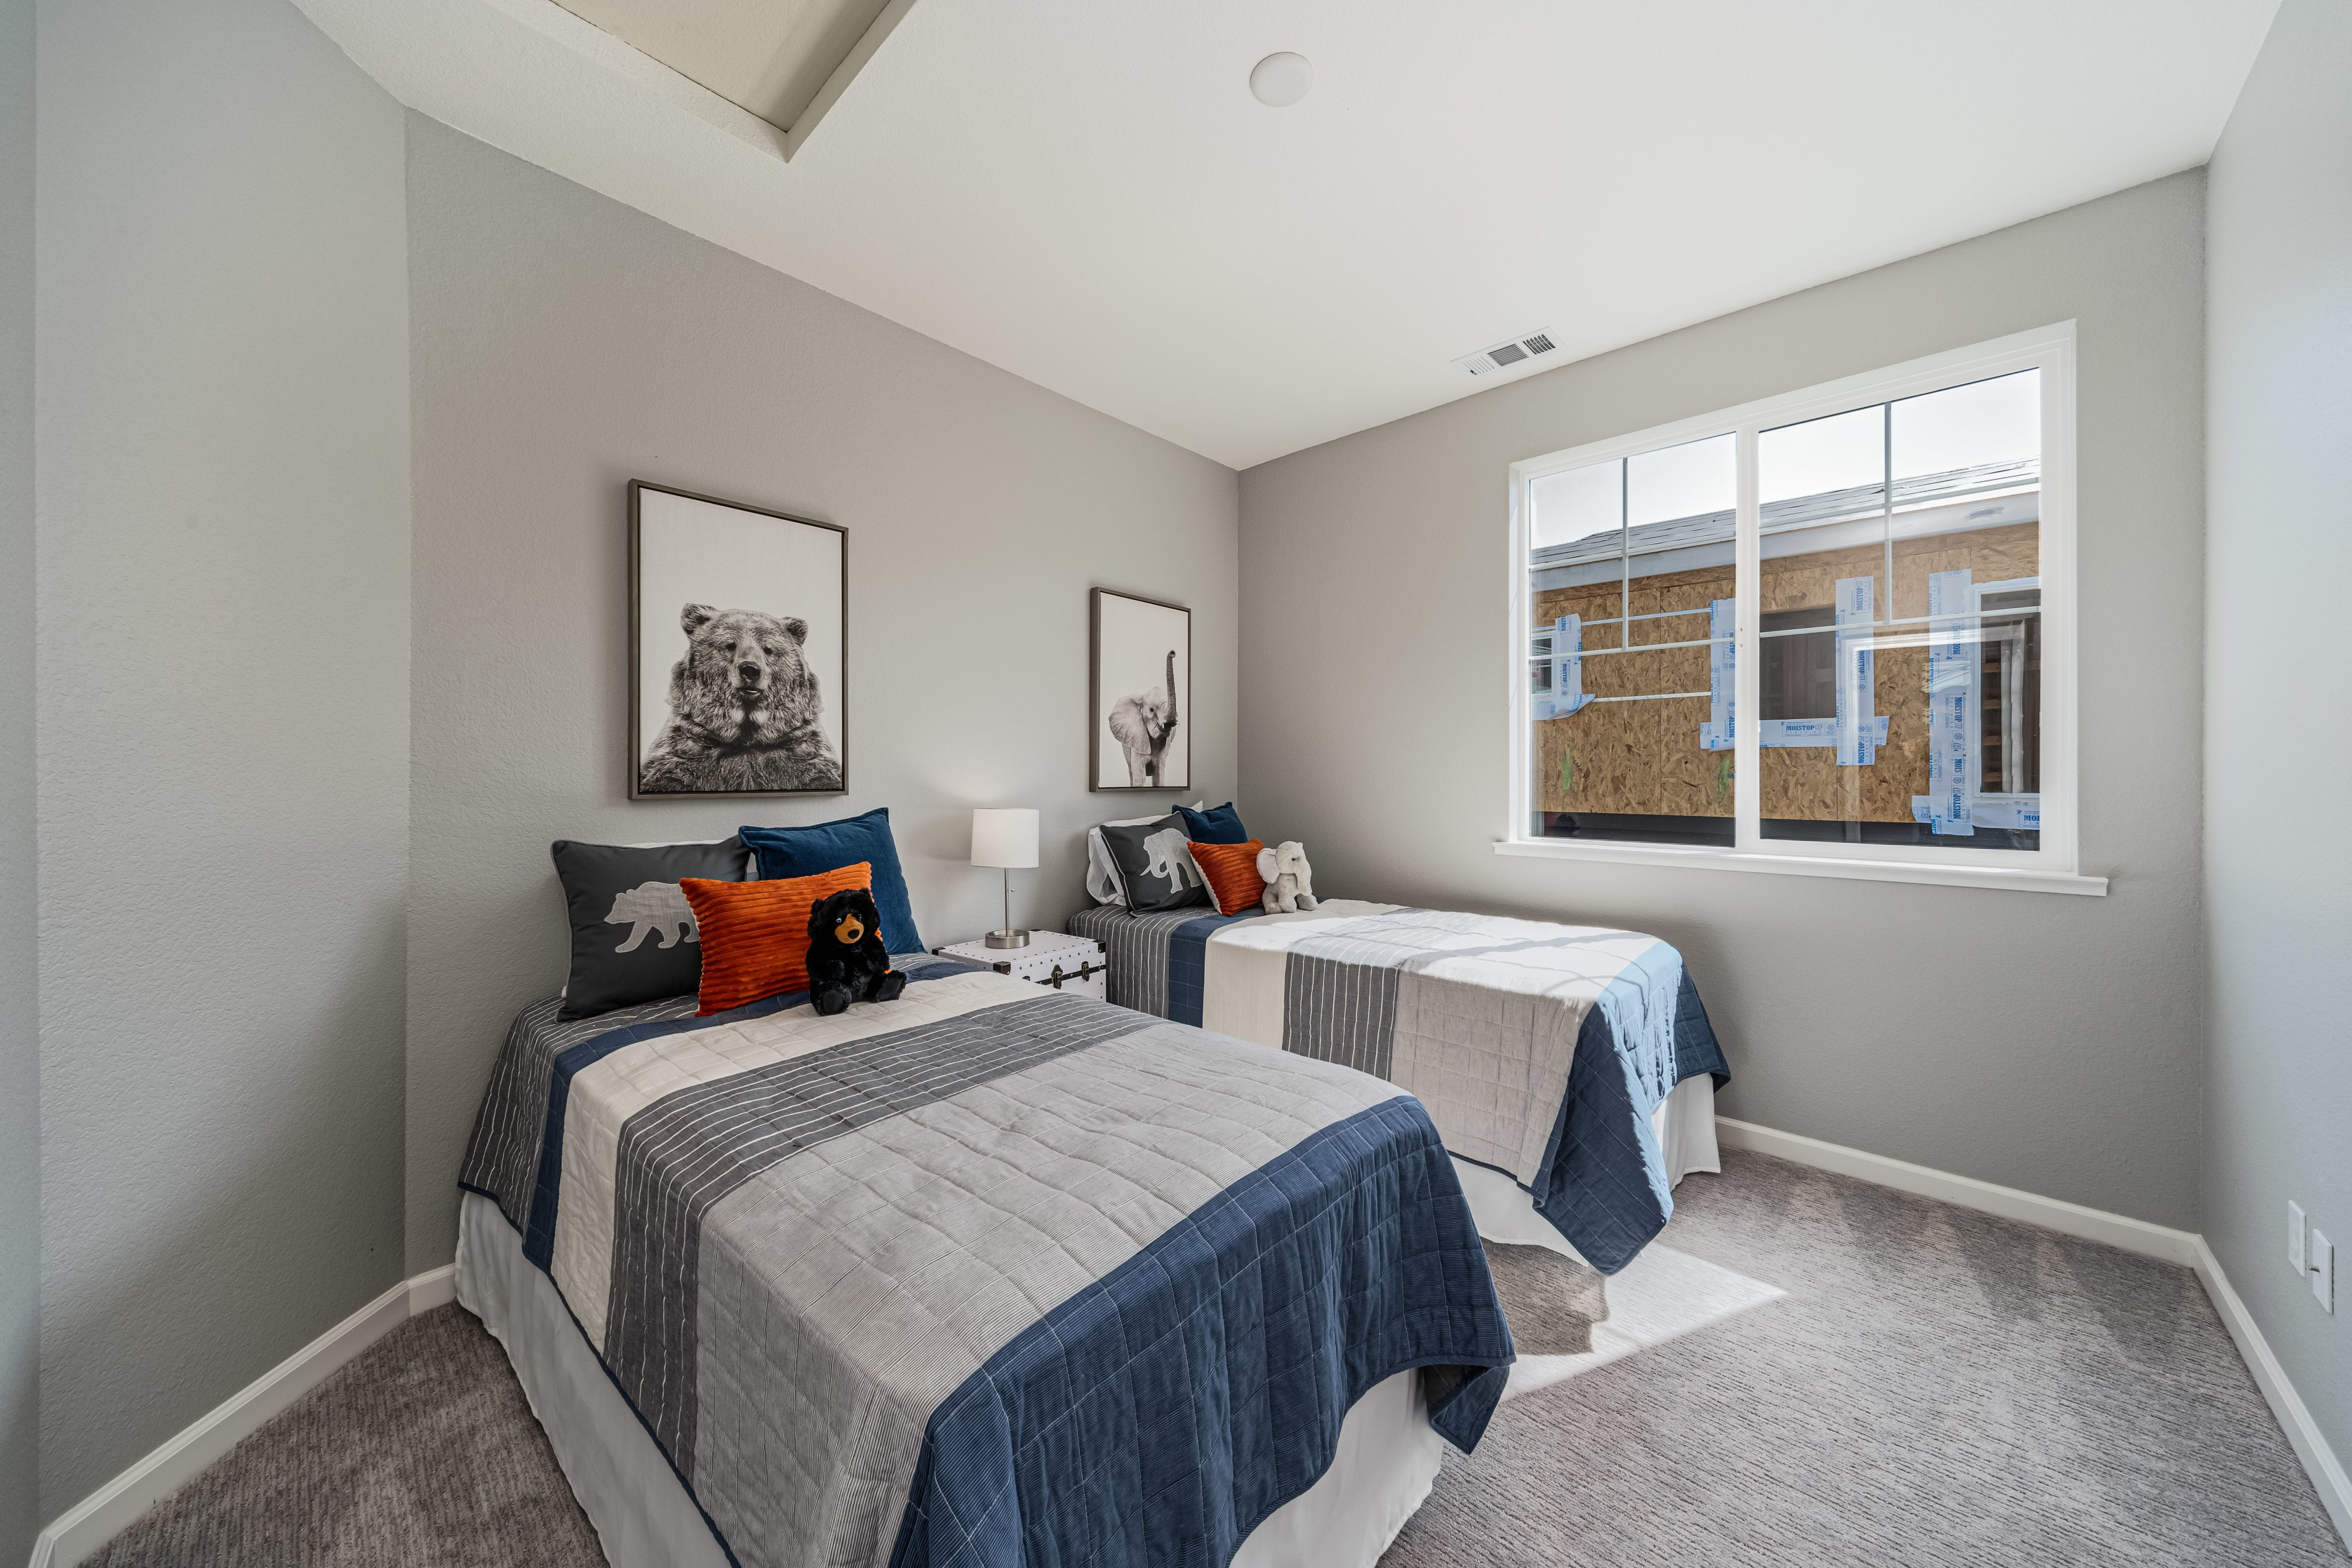 Bedroom featured in the Plan 3C By The Gardens in Santa Rosa, CA